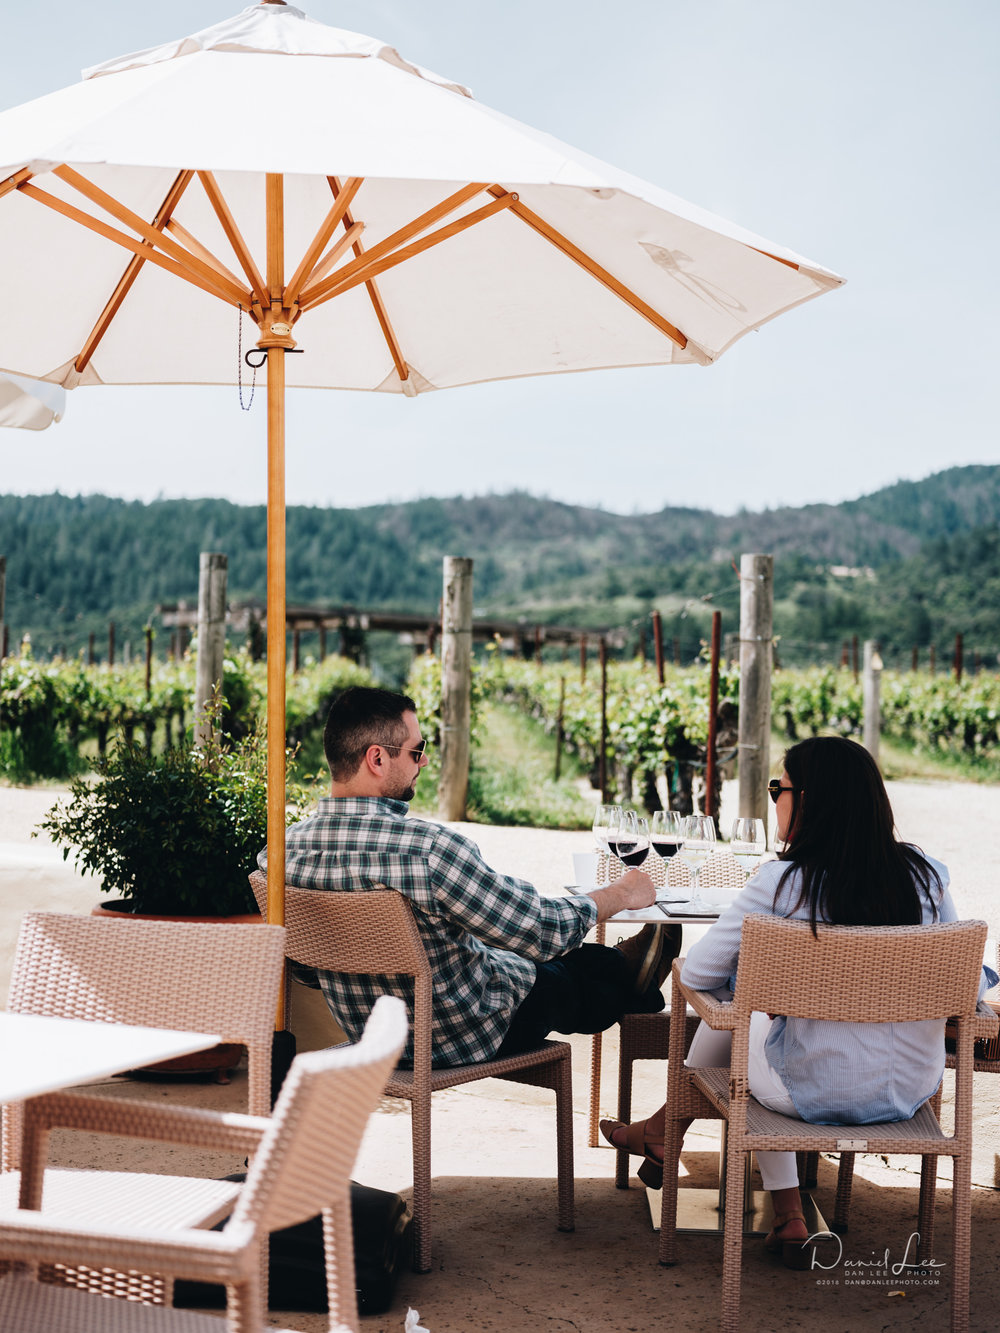 A couple enjoys wine tastings at Robert Mondavi Winery in Oakville, CA. Their Cabernet Sauvignon Reserve is extraordinary. Photo by Daniel Lee.